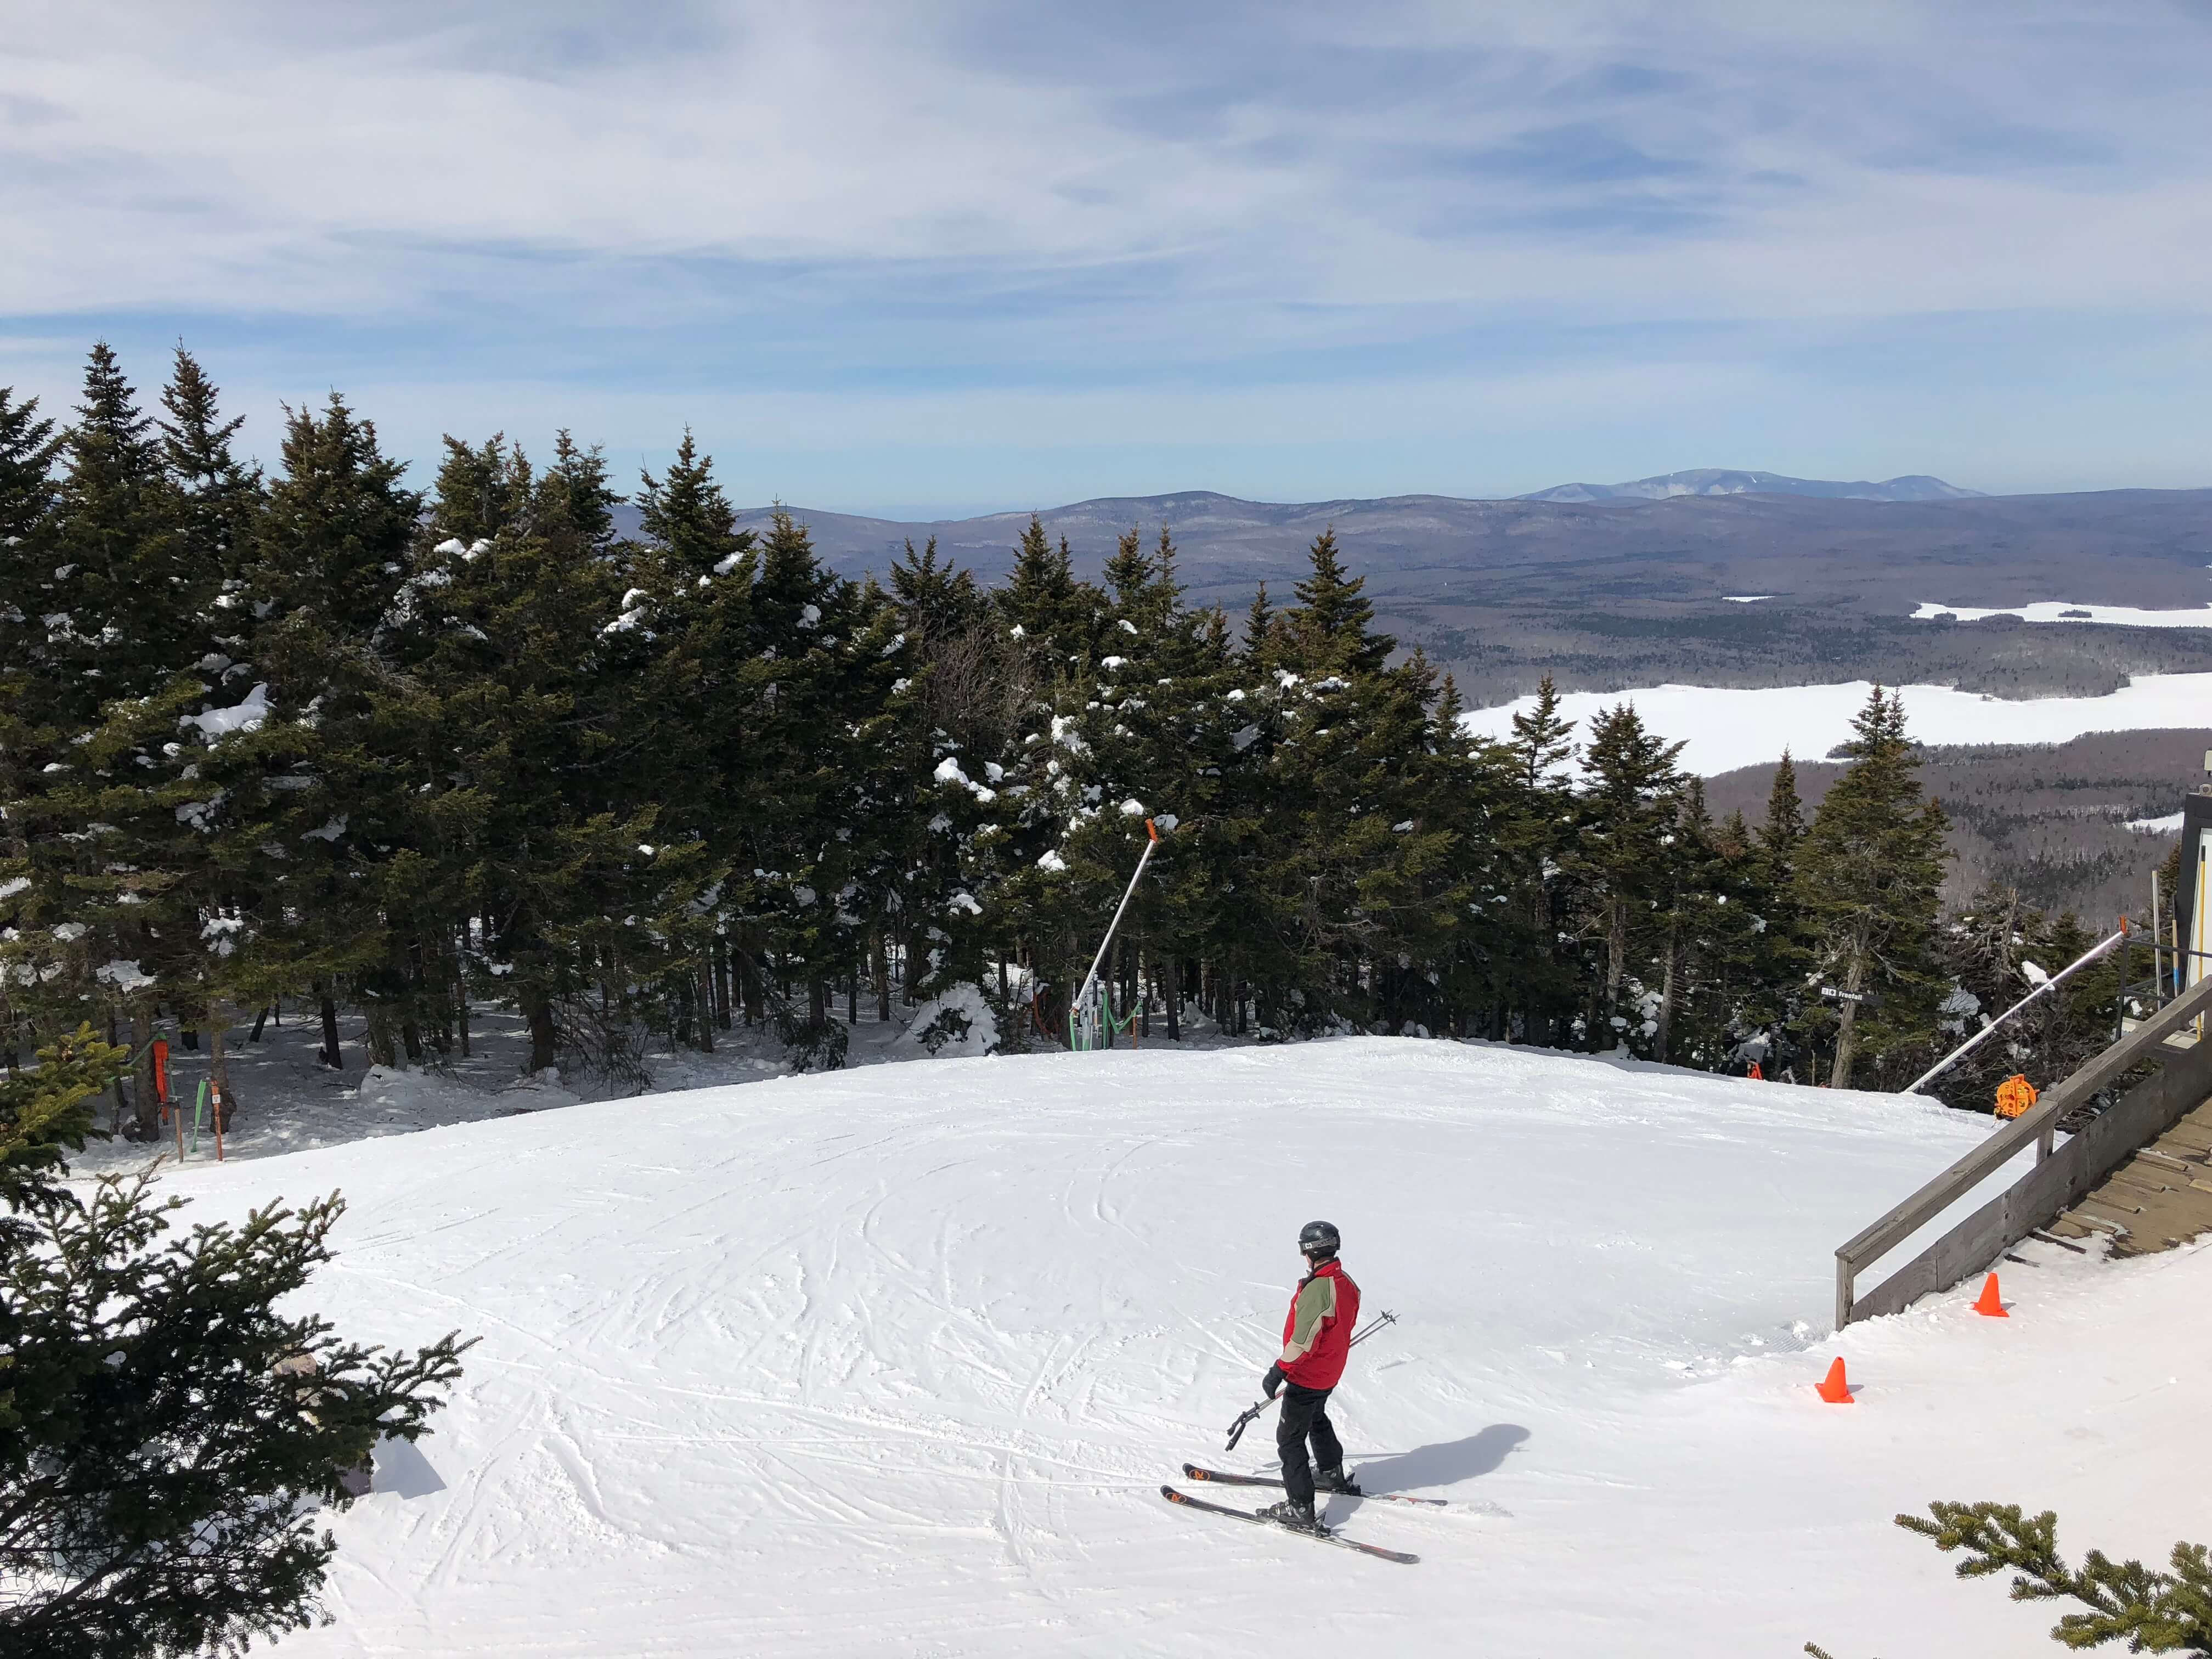 learning to ski as an adult at stratton mountain